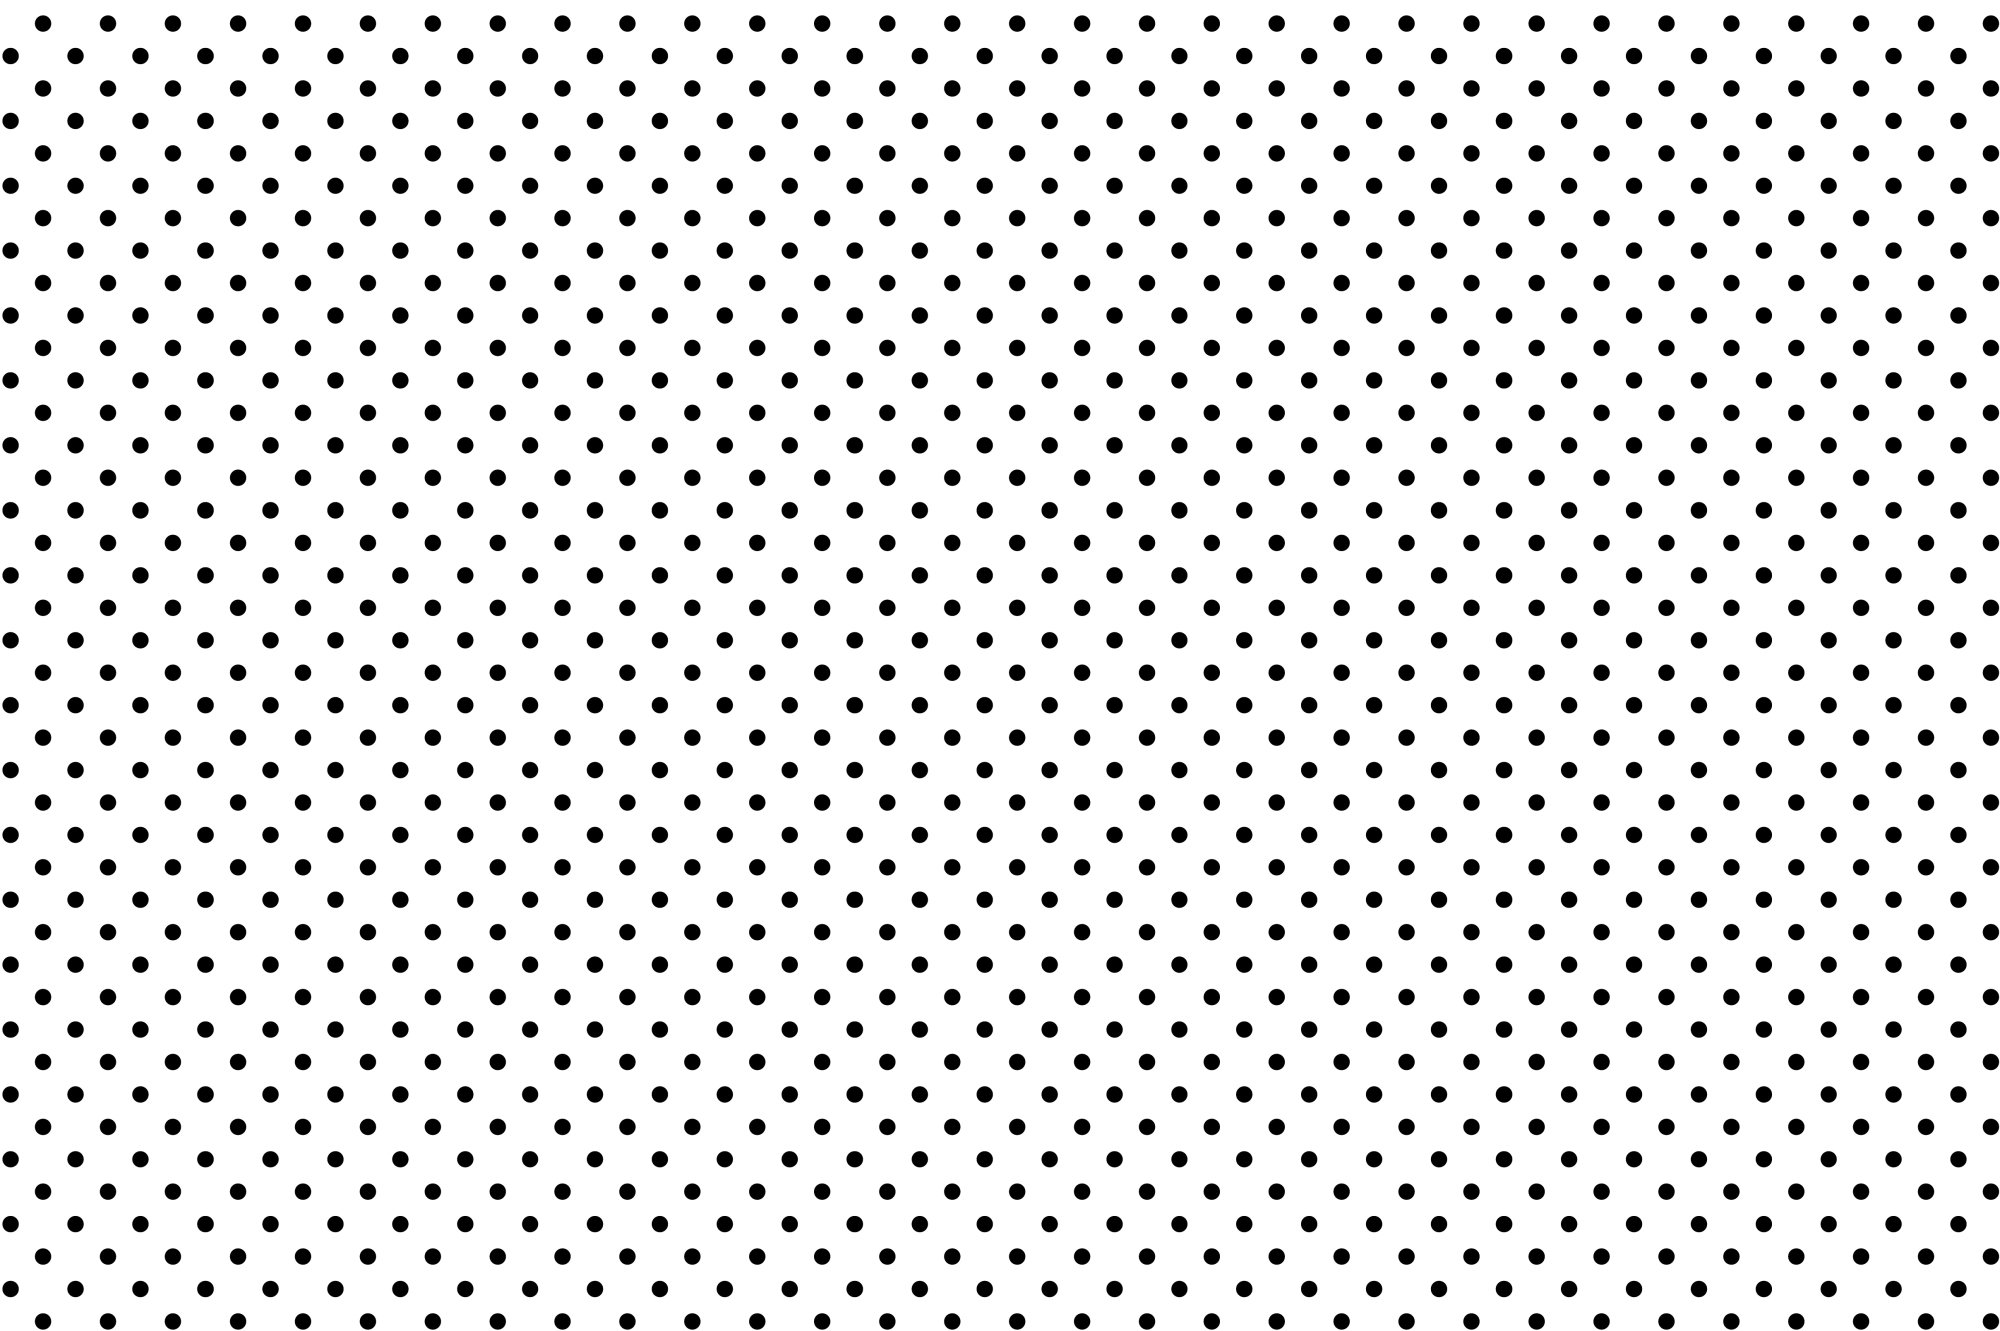 Set of dotted seamless patterns. example image 21